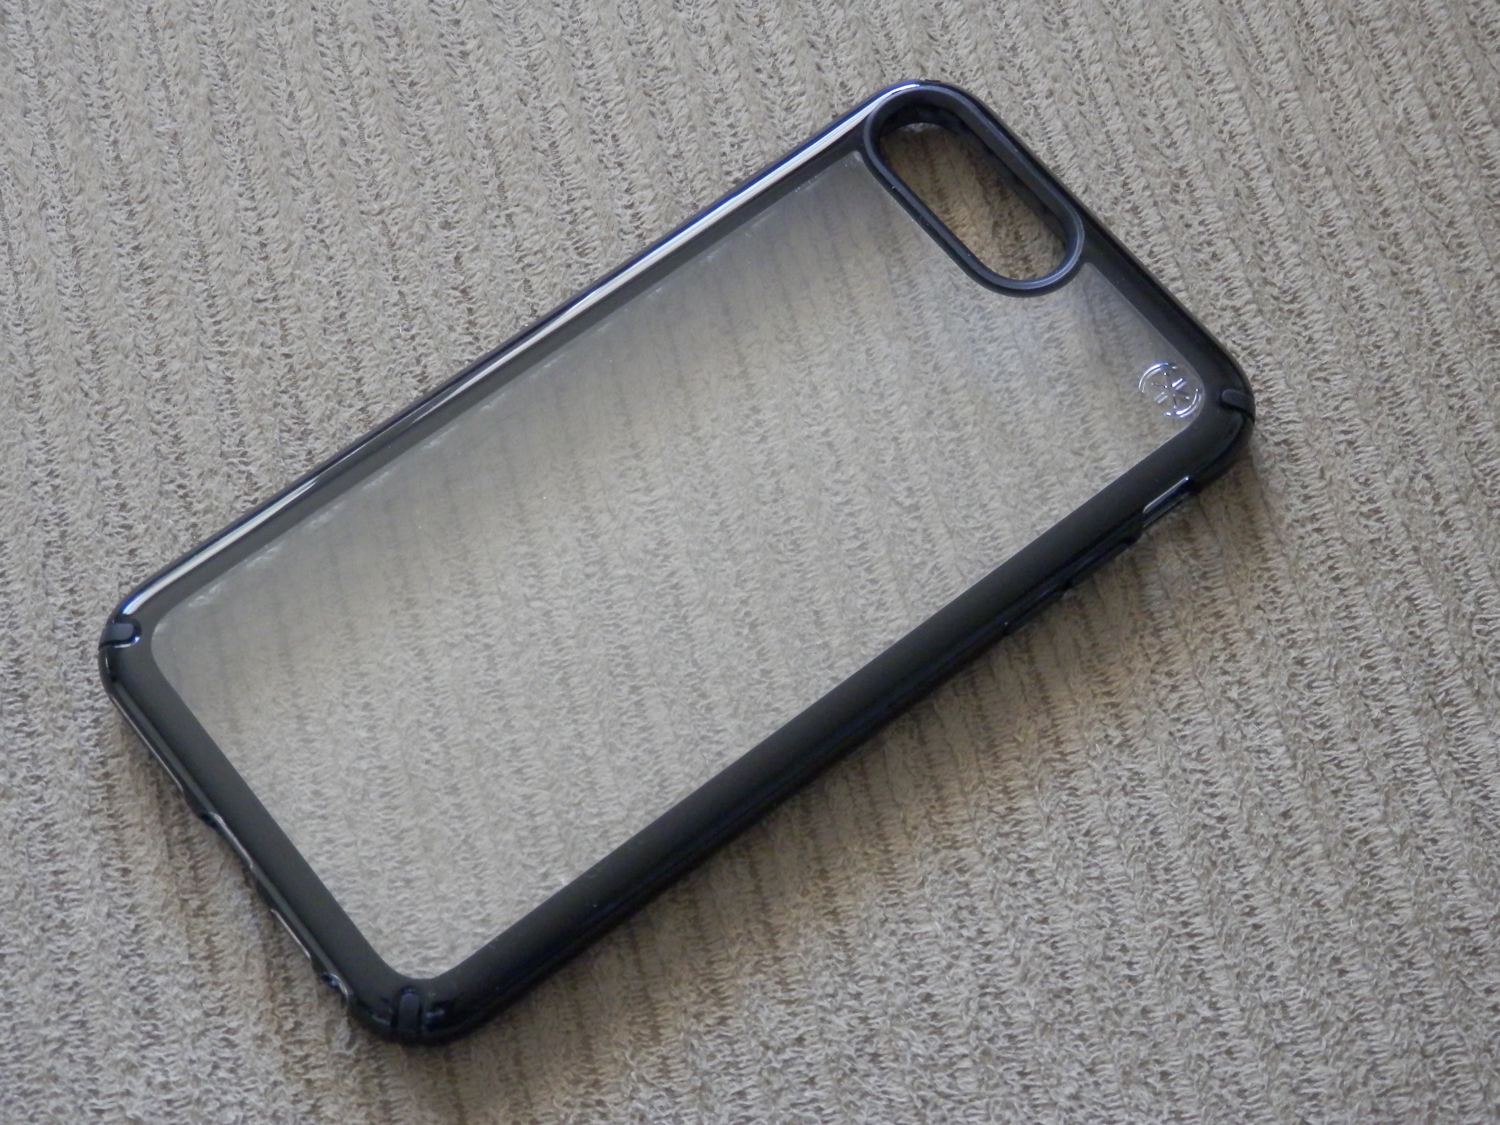 official photos af9a5 fd4d7 Speck's Presidio Show reveals your iPhone's finish through the back ...